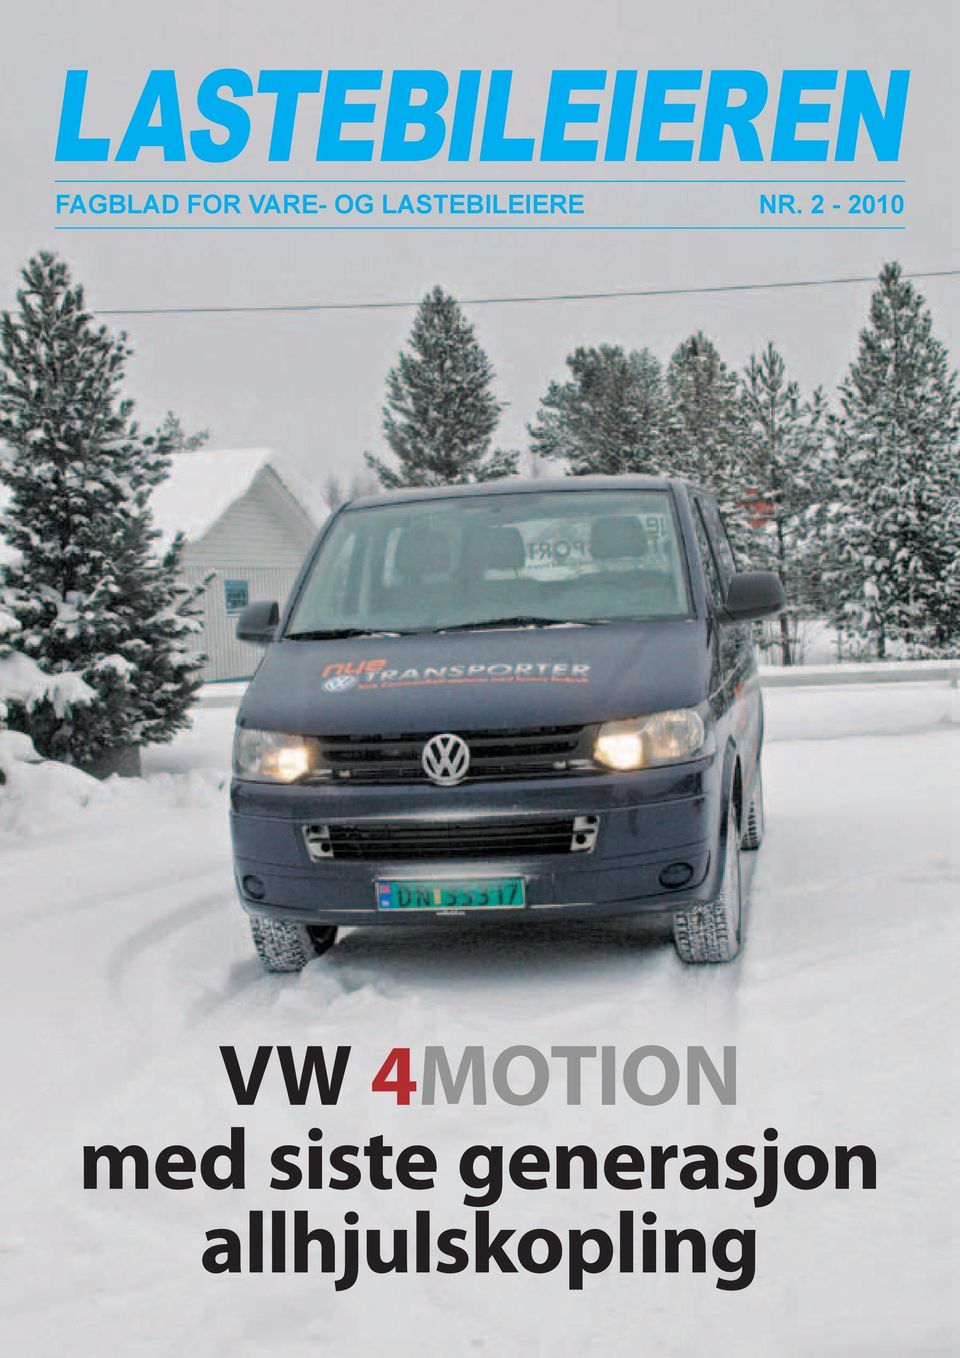 2-2010 VW 4MOTION med